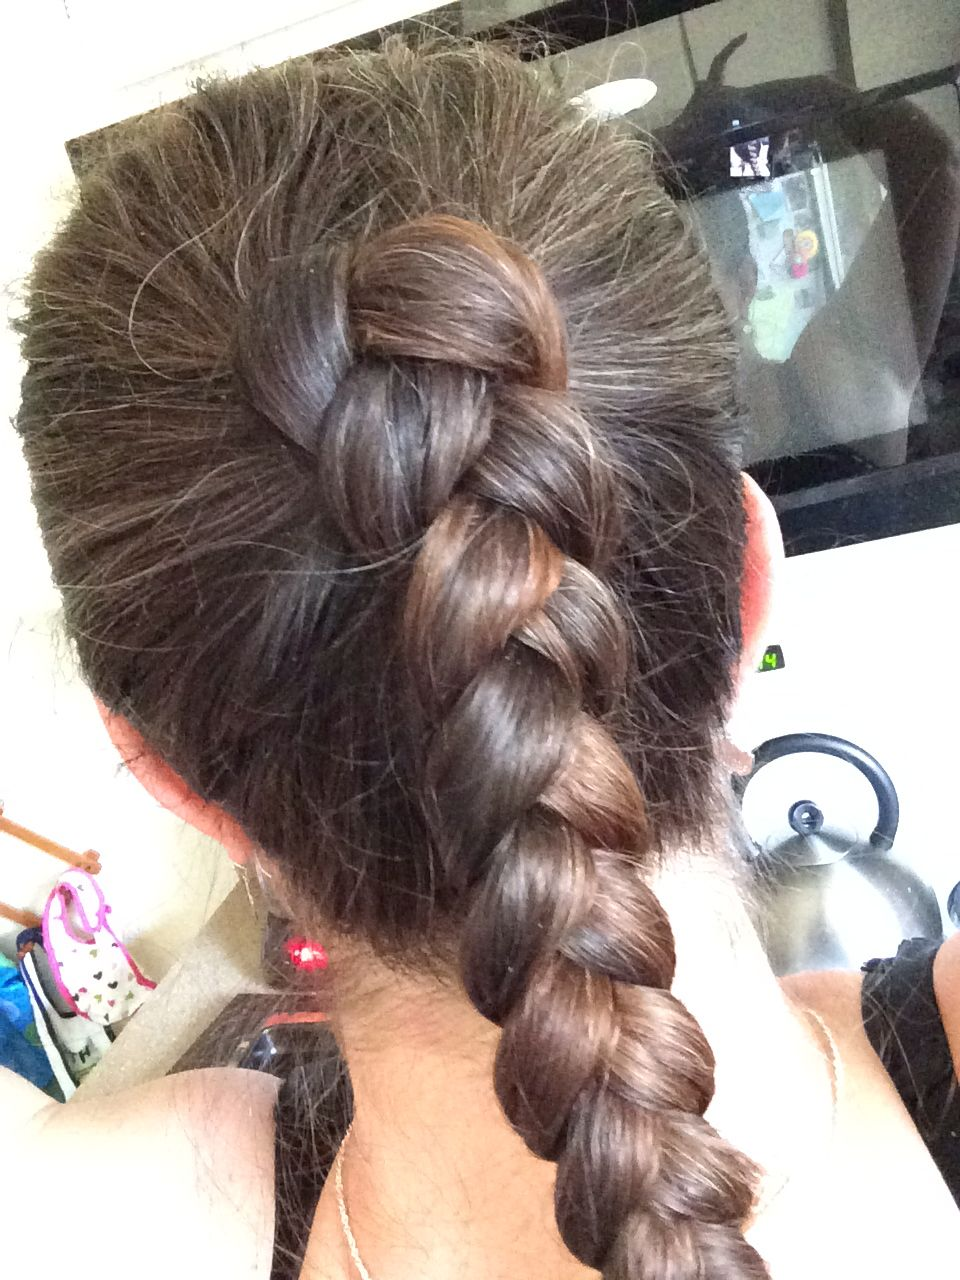 Ponytail without hair band - Ponytail Braid Without The Hair Band Just Pull Back And Tightly Braid